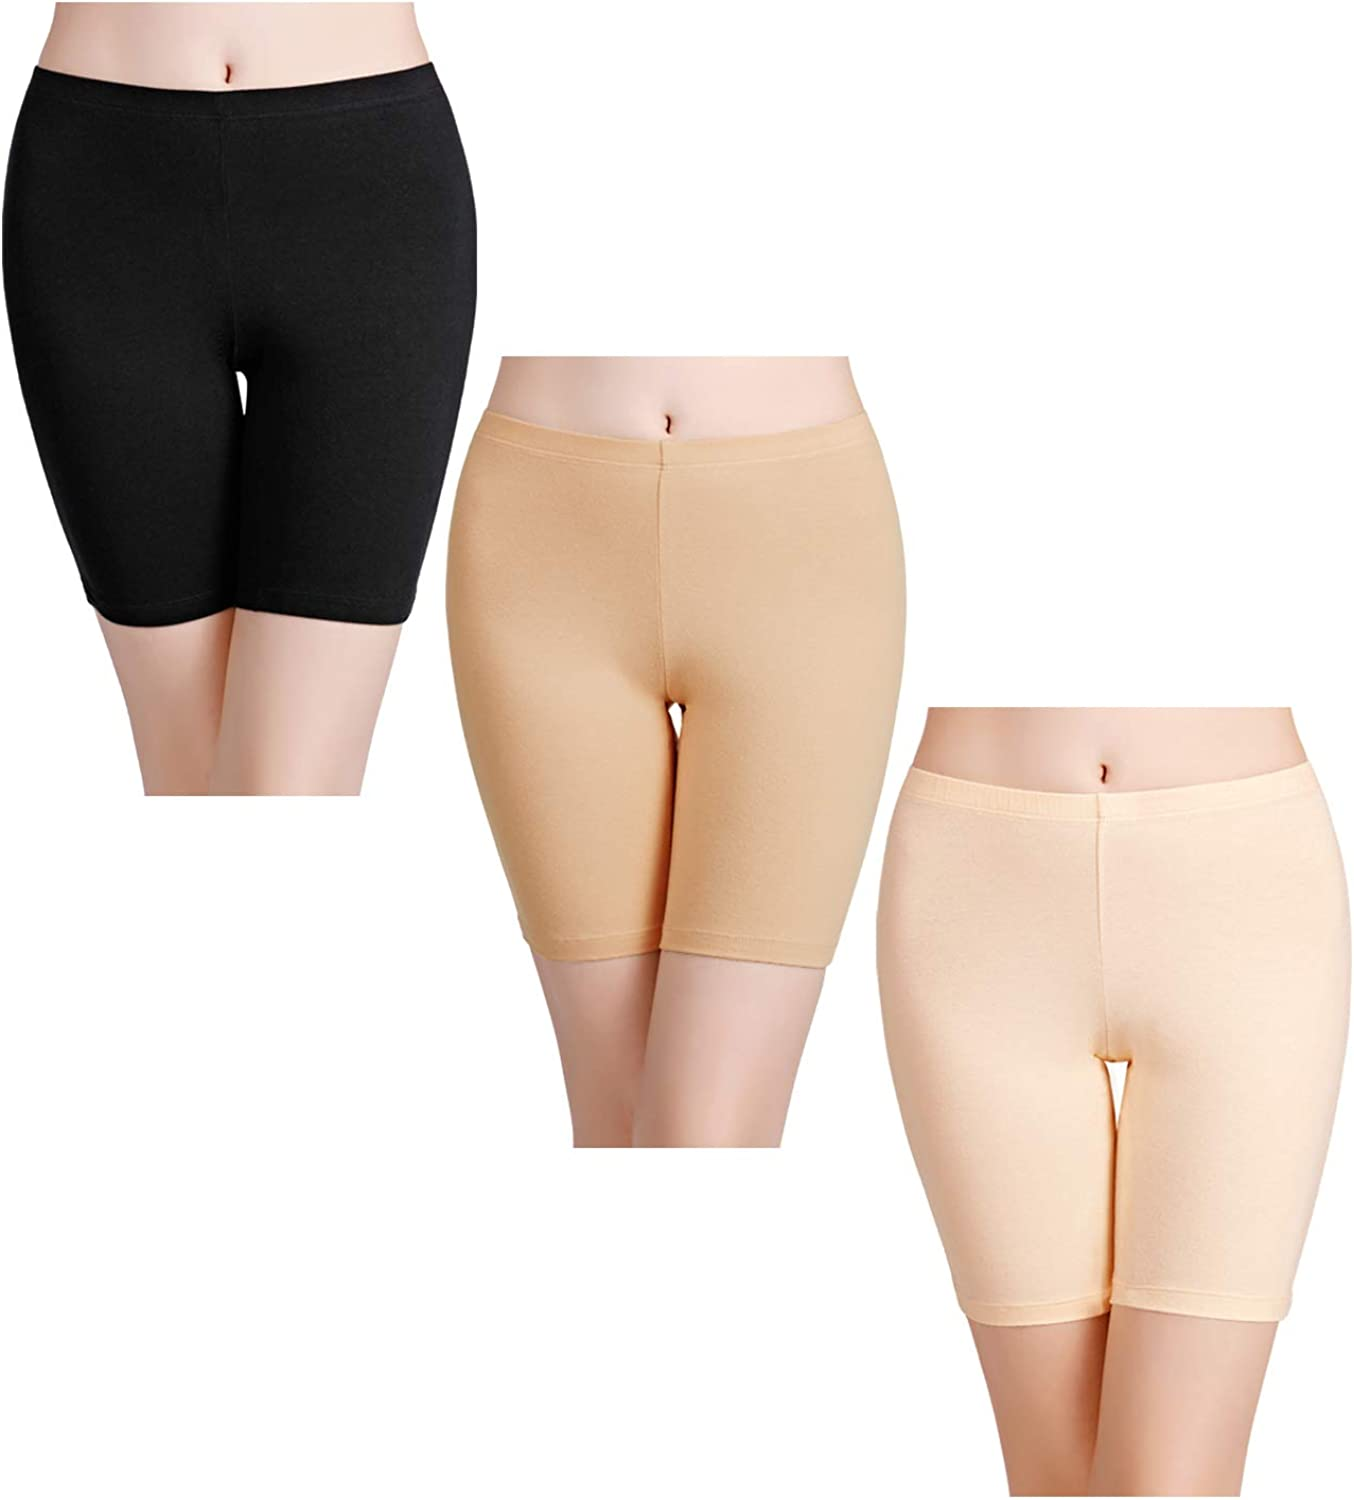 wirarpa Women's Anti Chafing Cotton Underwear Shorts Le Challenge the lowest price Boy free shipping Long